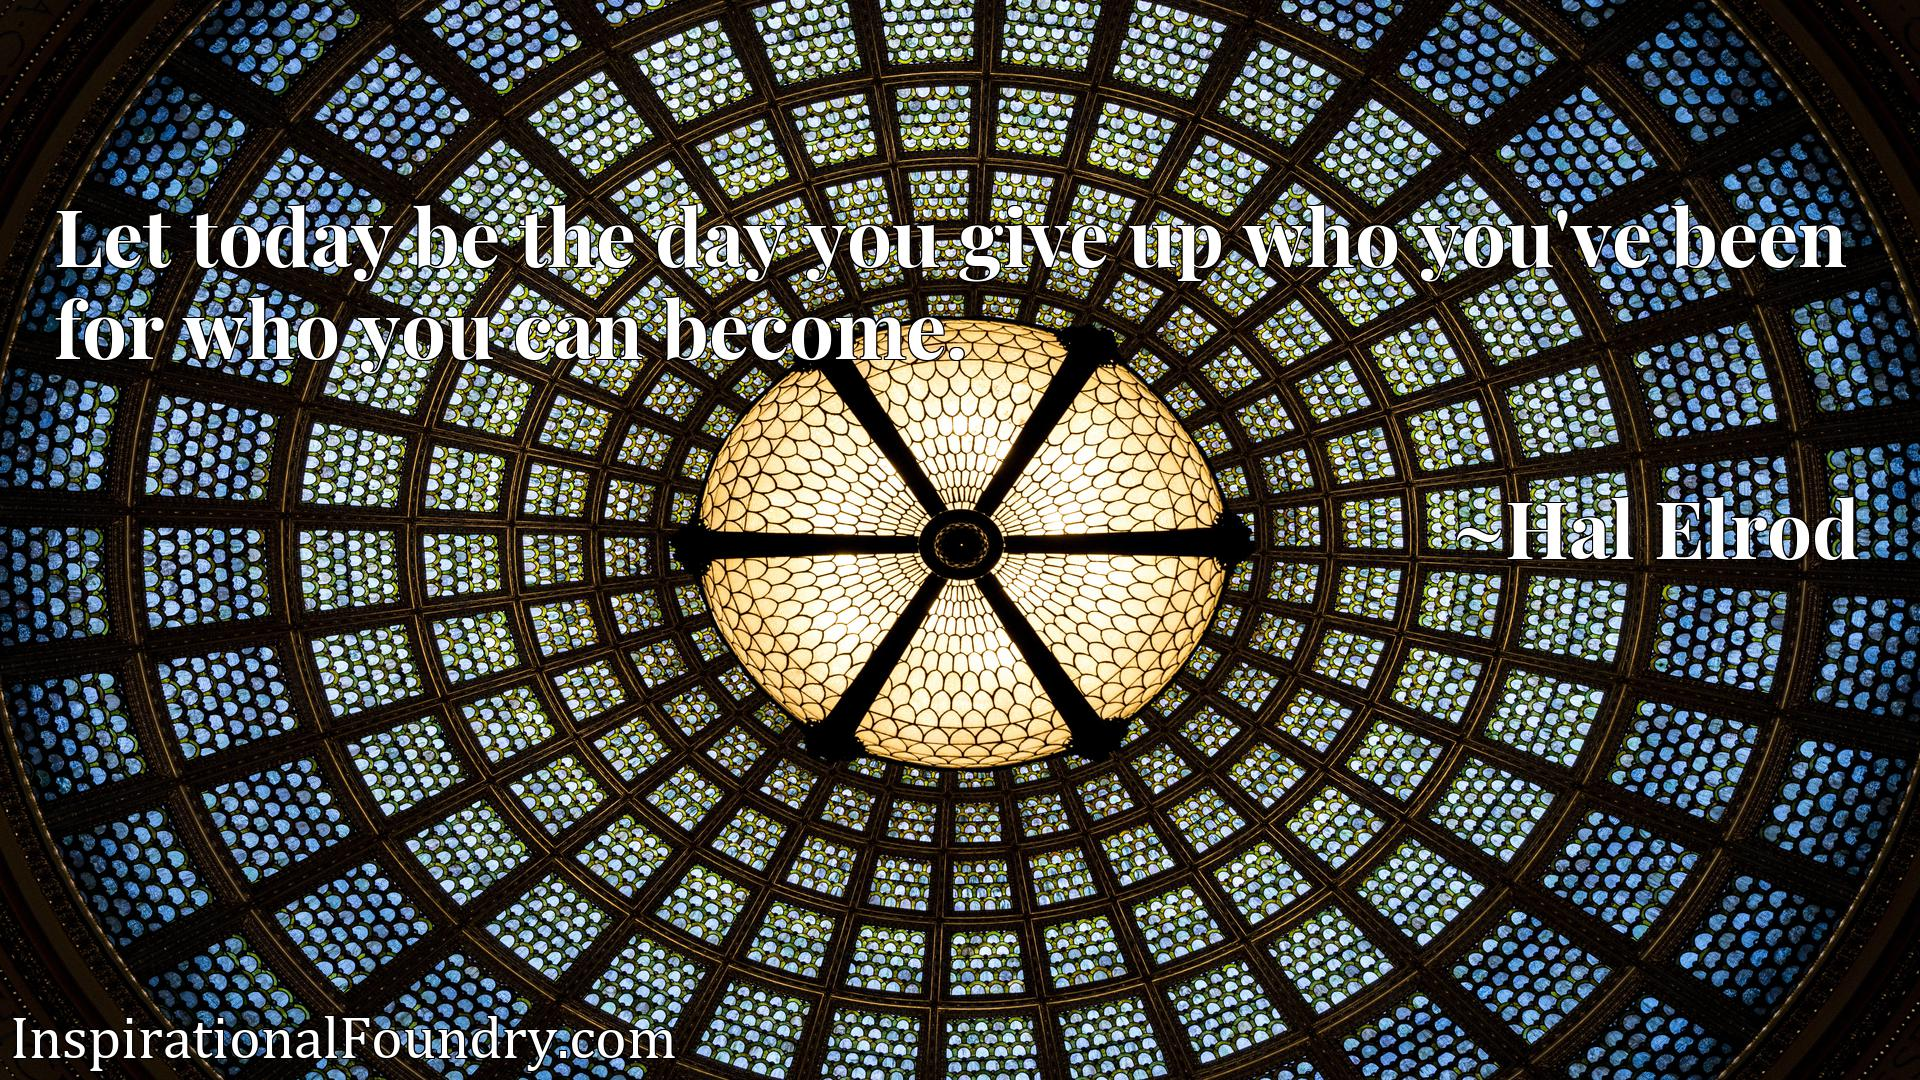 Quote Picture :Let today be the day you give up who you've been for who you can become.